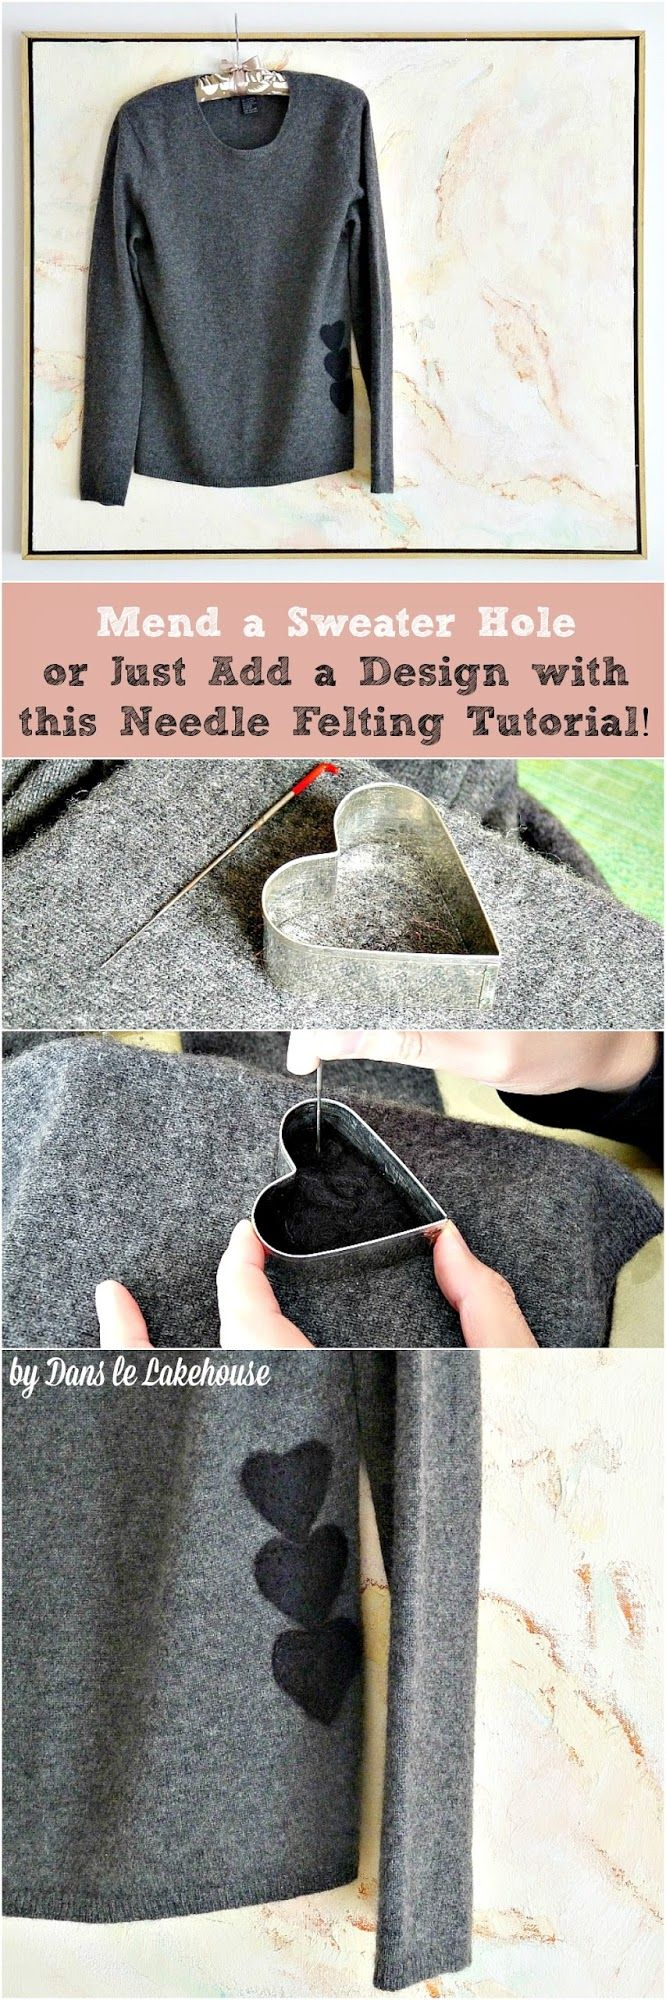 How to use needle felting techniques to update, decorate or even mend a hole in a wool sweater // How to mend a sweater hole in style!